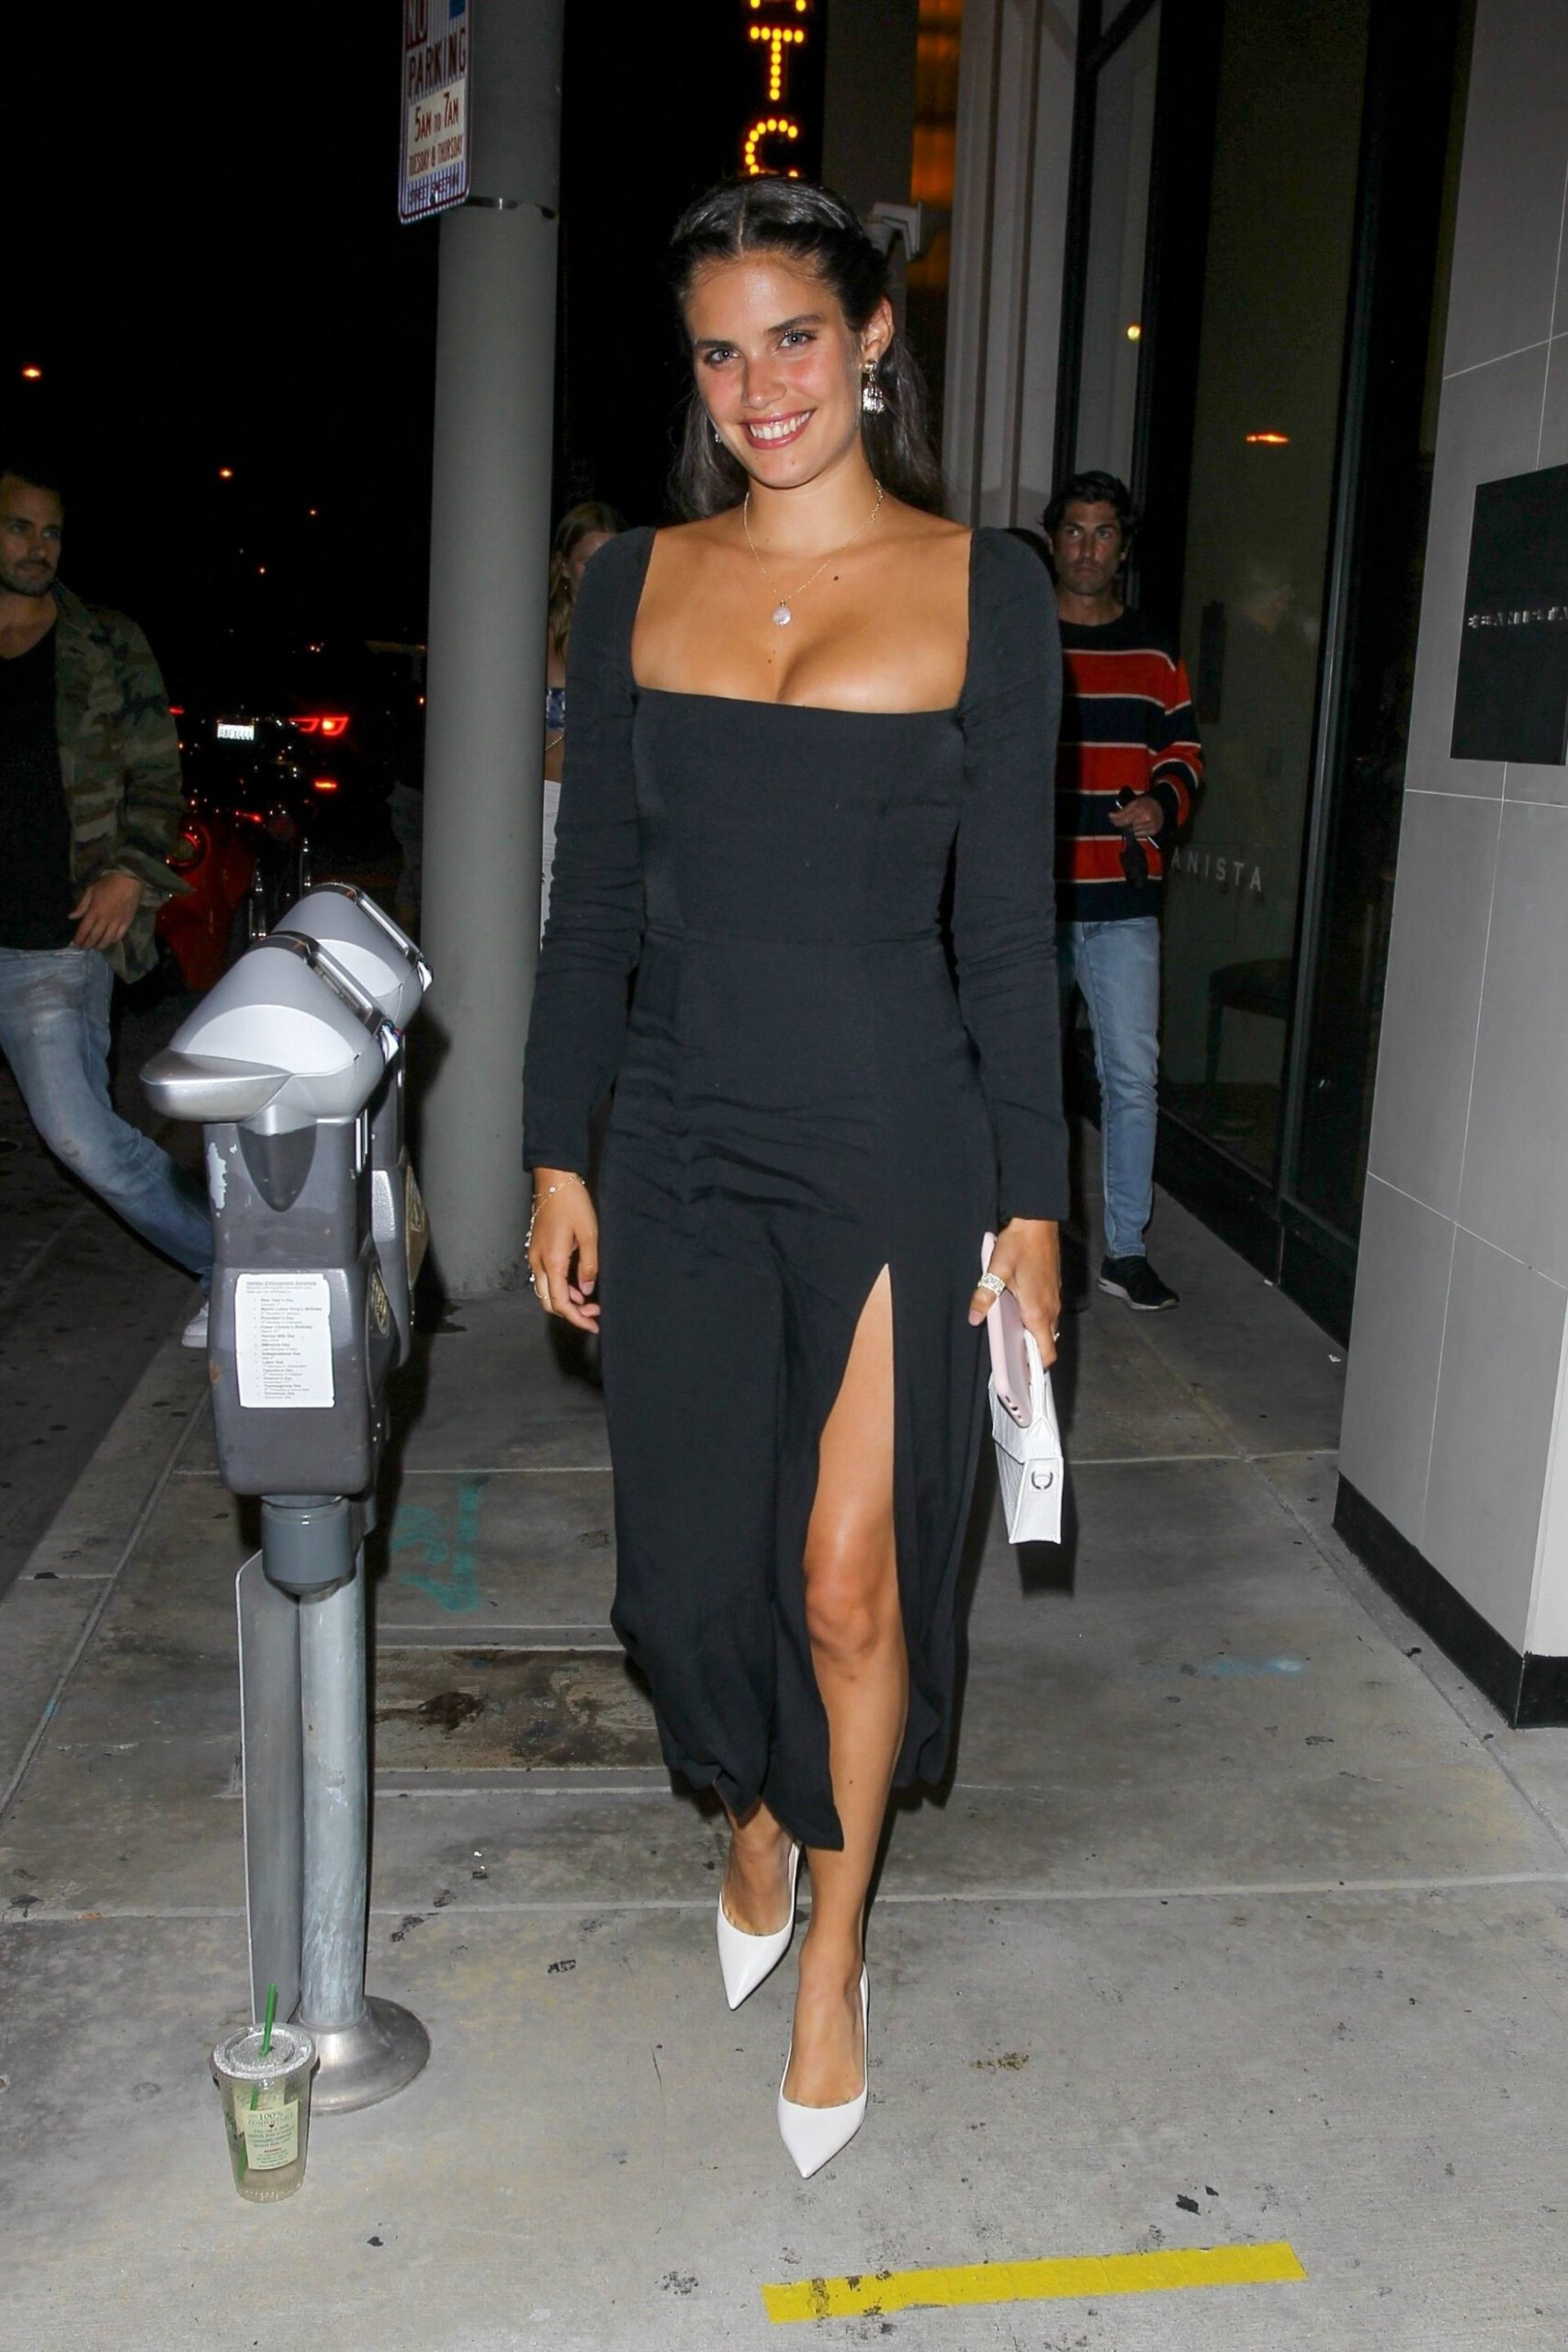 Sara Sampaio – Beautiful In Sexy Black Dress At Catch Restaurant In West Hollywood 0012